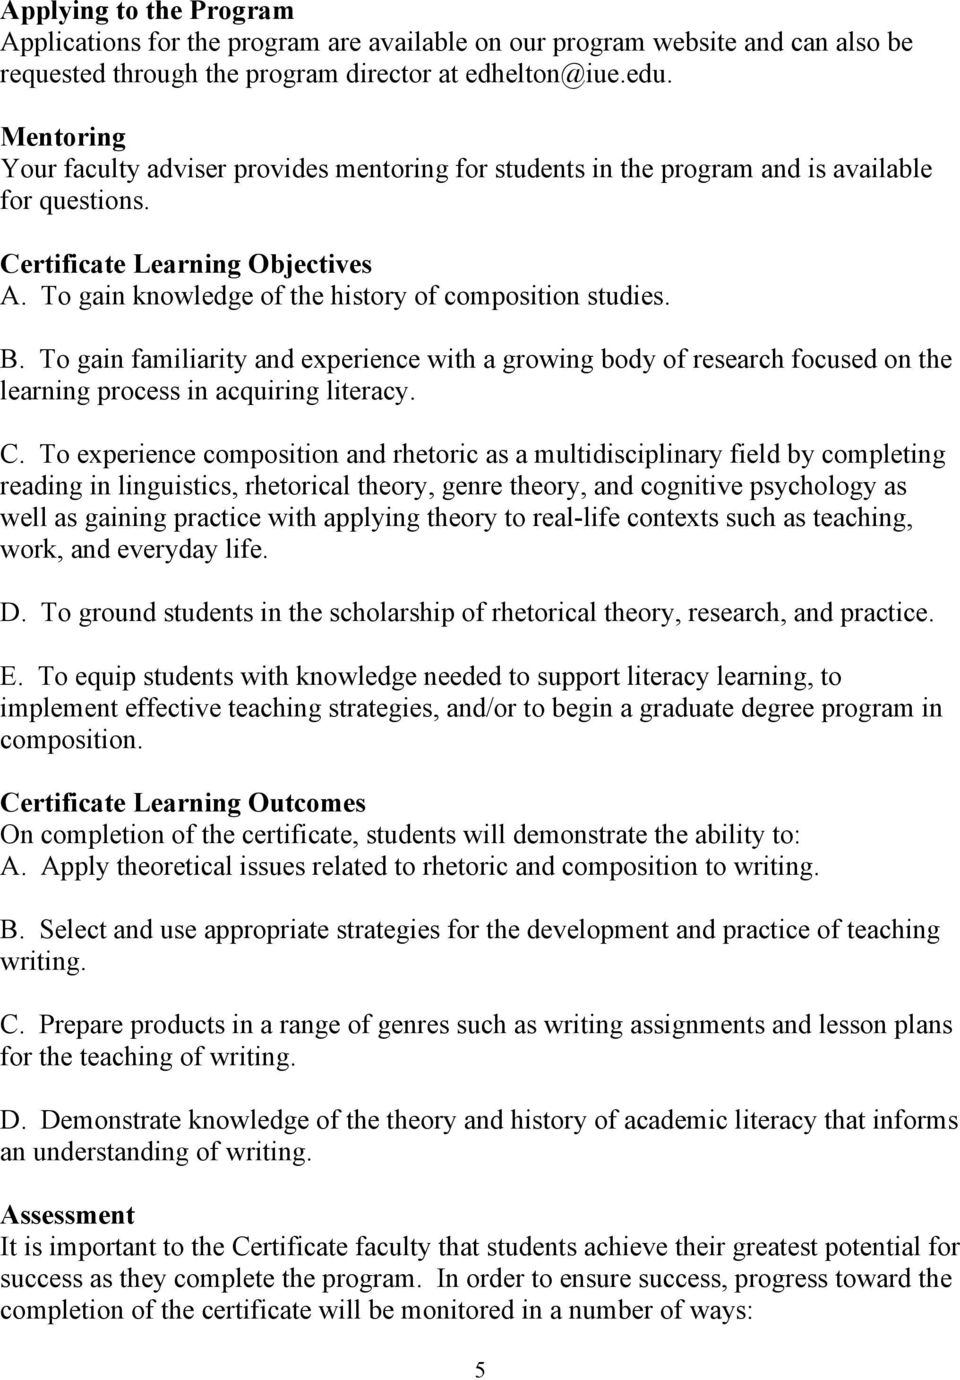 To gain knowledge of the history of composition studies. B. To gain familiarity and experience with a growing body of research focused on the learning process in acquiring literacy. C.